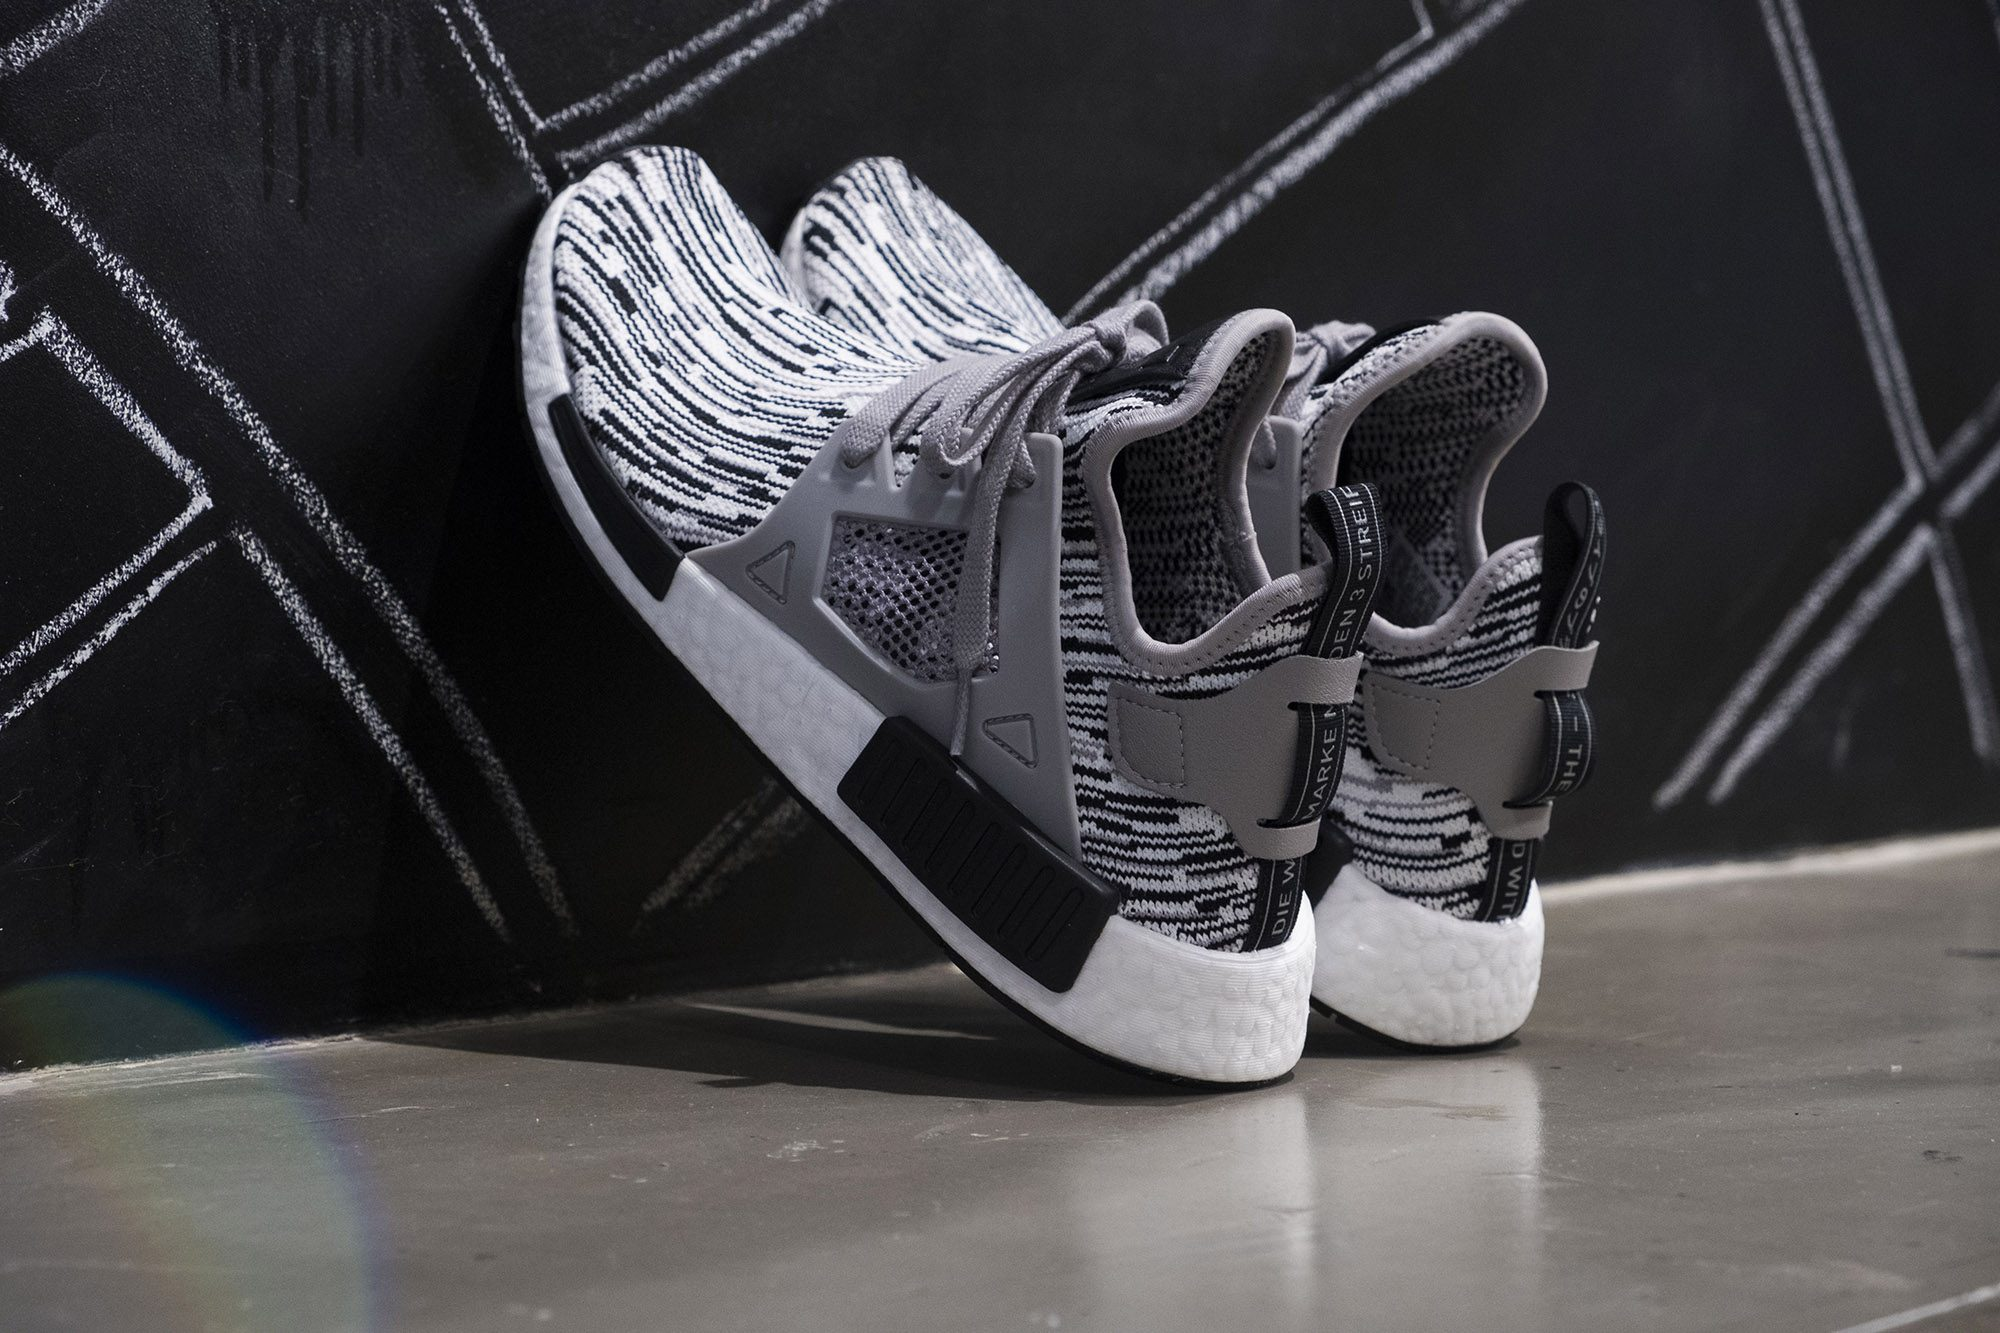 nmd-og-color-way-on-adidas-originals-nmd-xr1-03